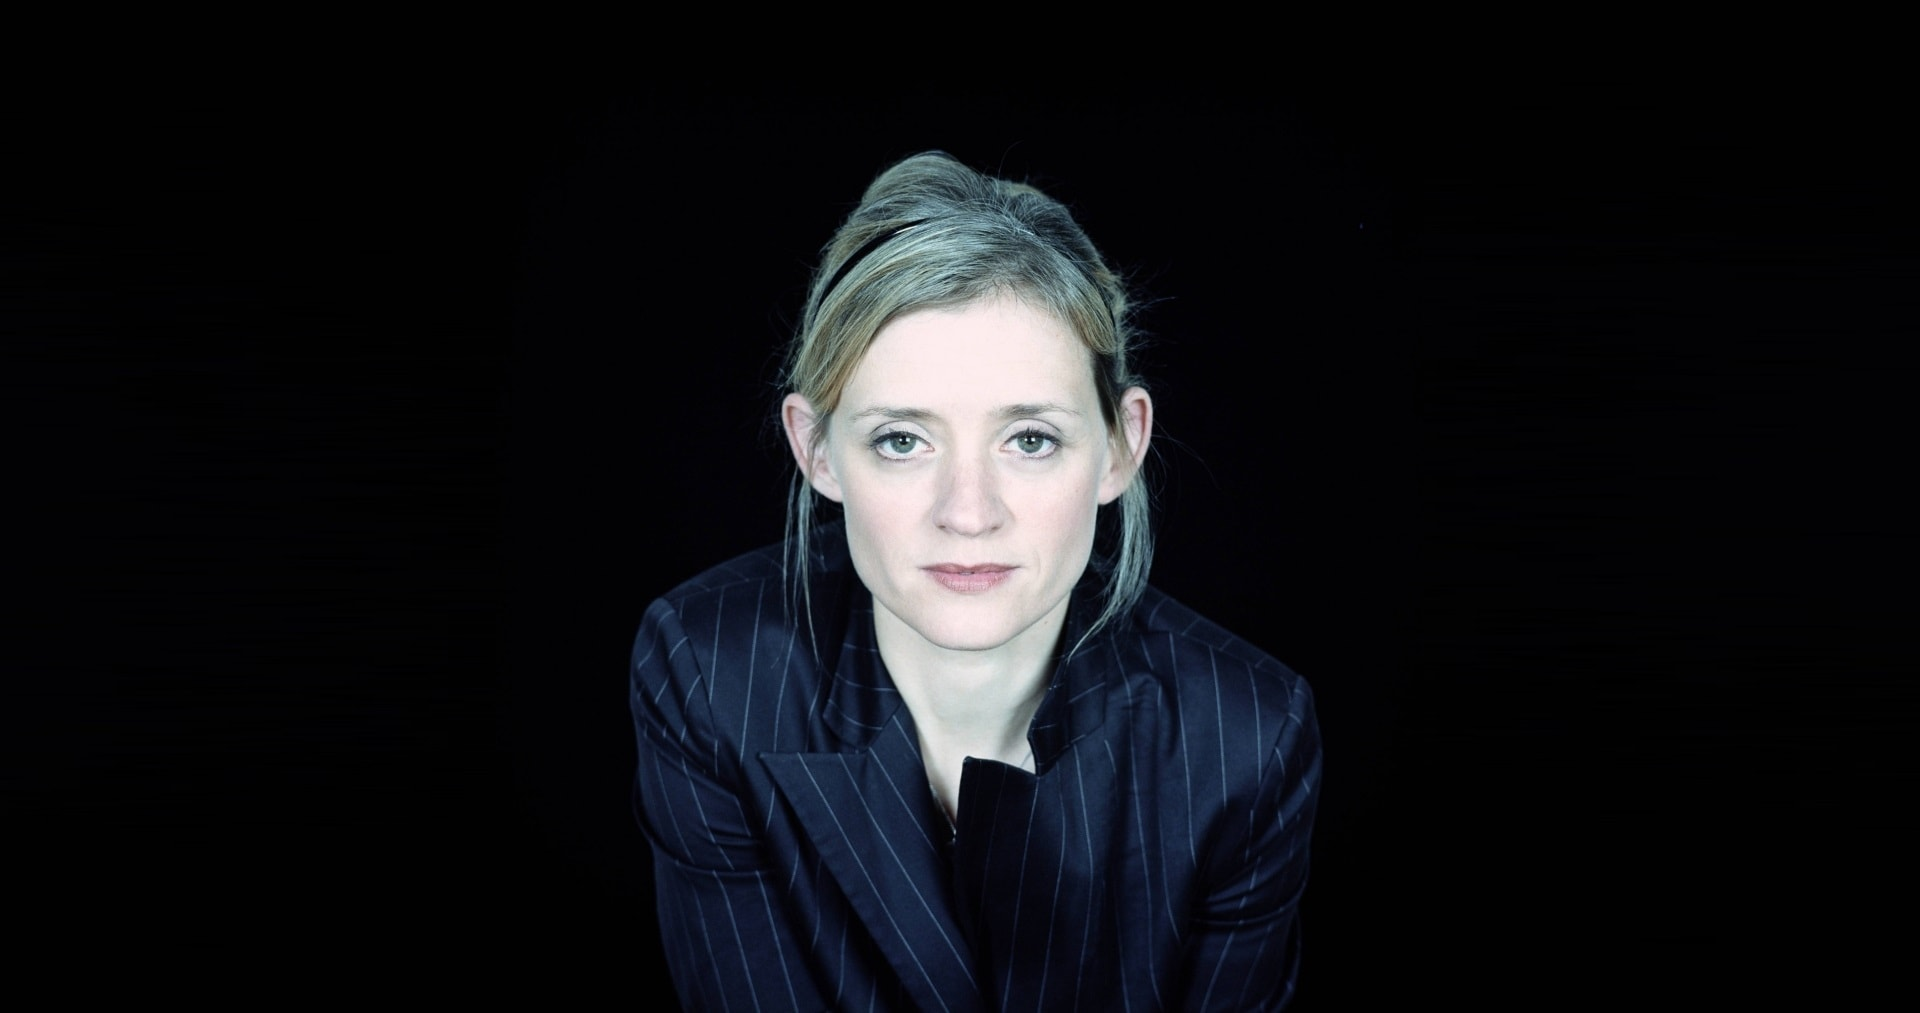 Anne-Marie Duff Wallpaper